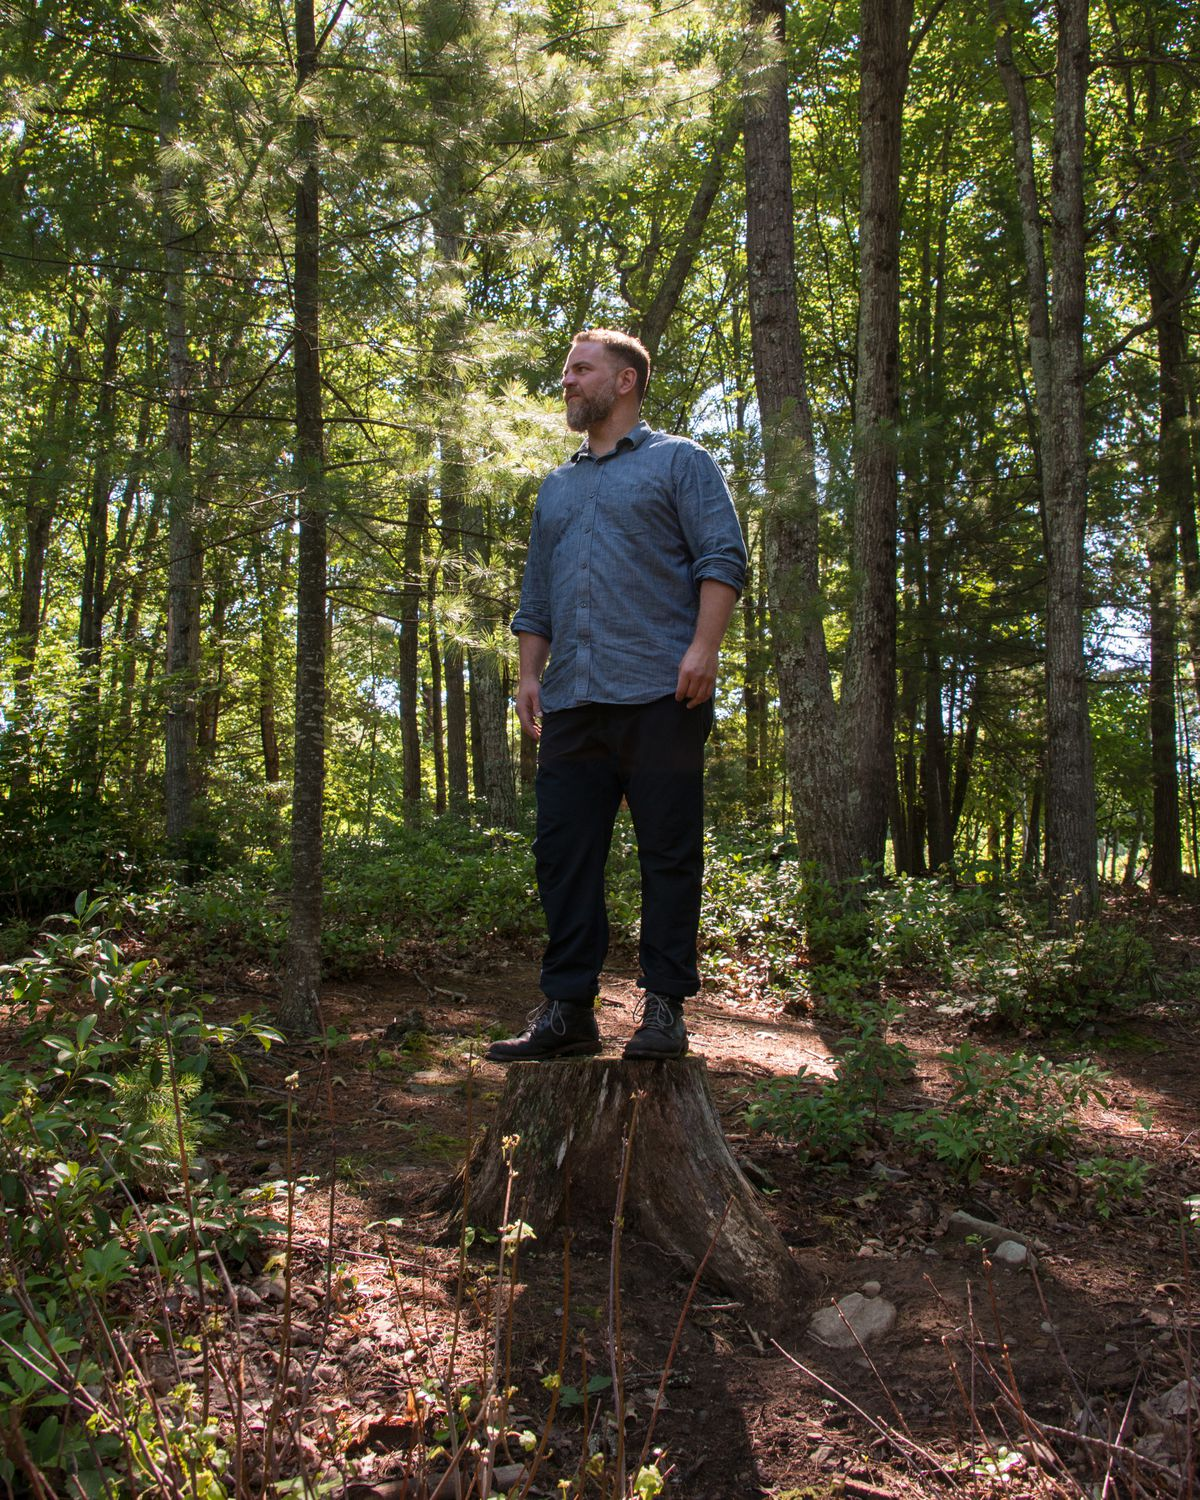 The owner stands on a tree stump in the woods.